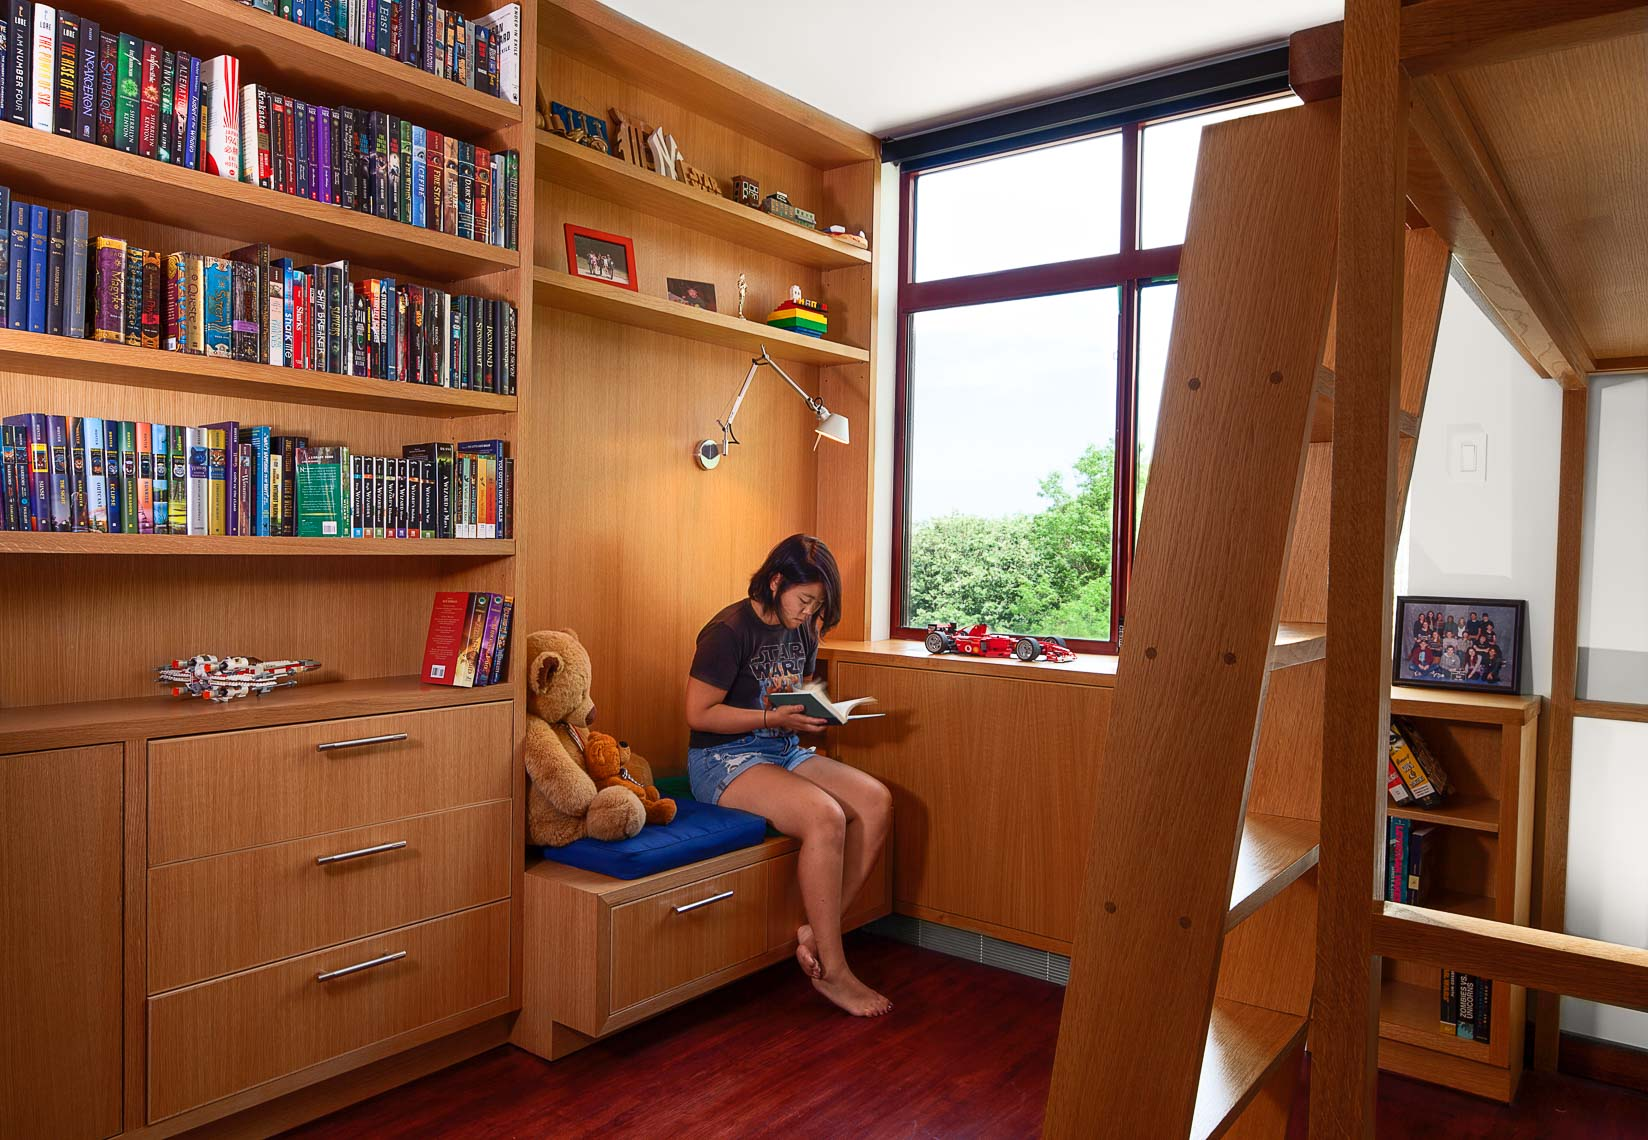 Girl reading a book in a wood paneled study with book shelves